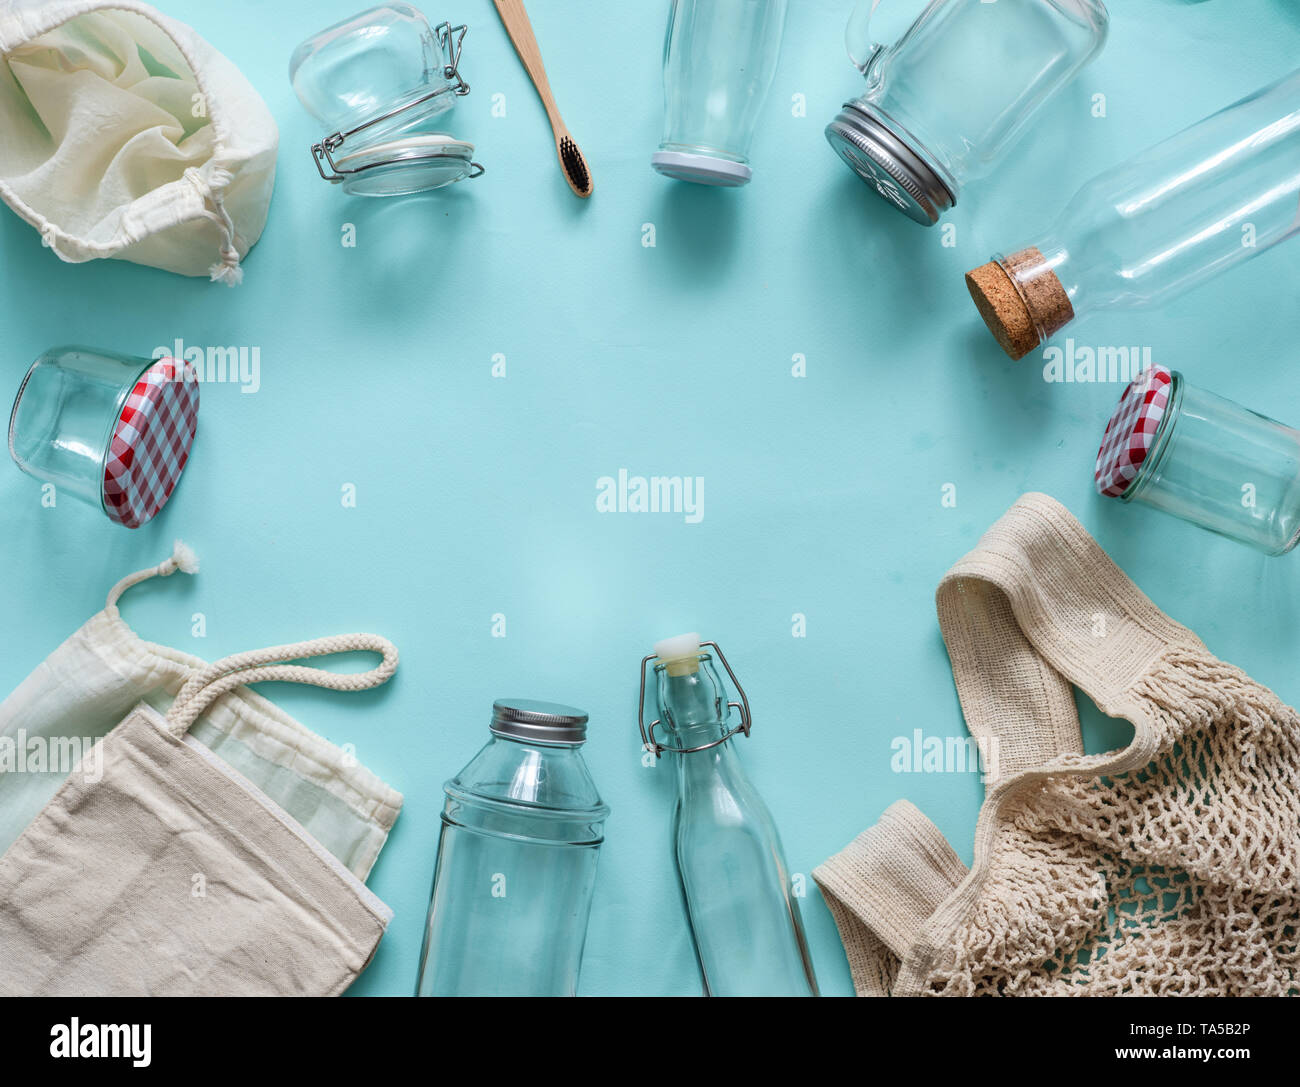 Zero waste concept. Textile eco bags, glass jars and bamboo toothbrush on blue background with copy space for text in center. Eco friendly and reuse c - Stock Image